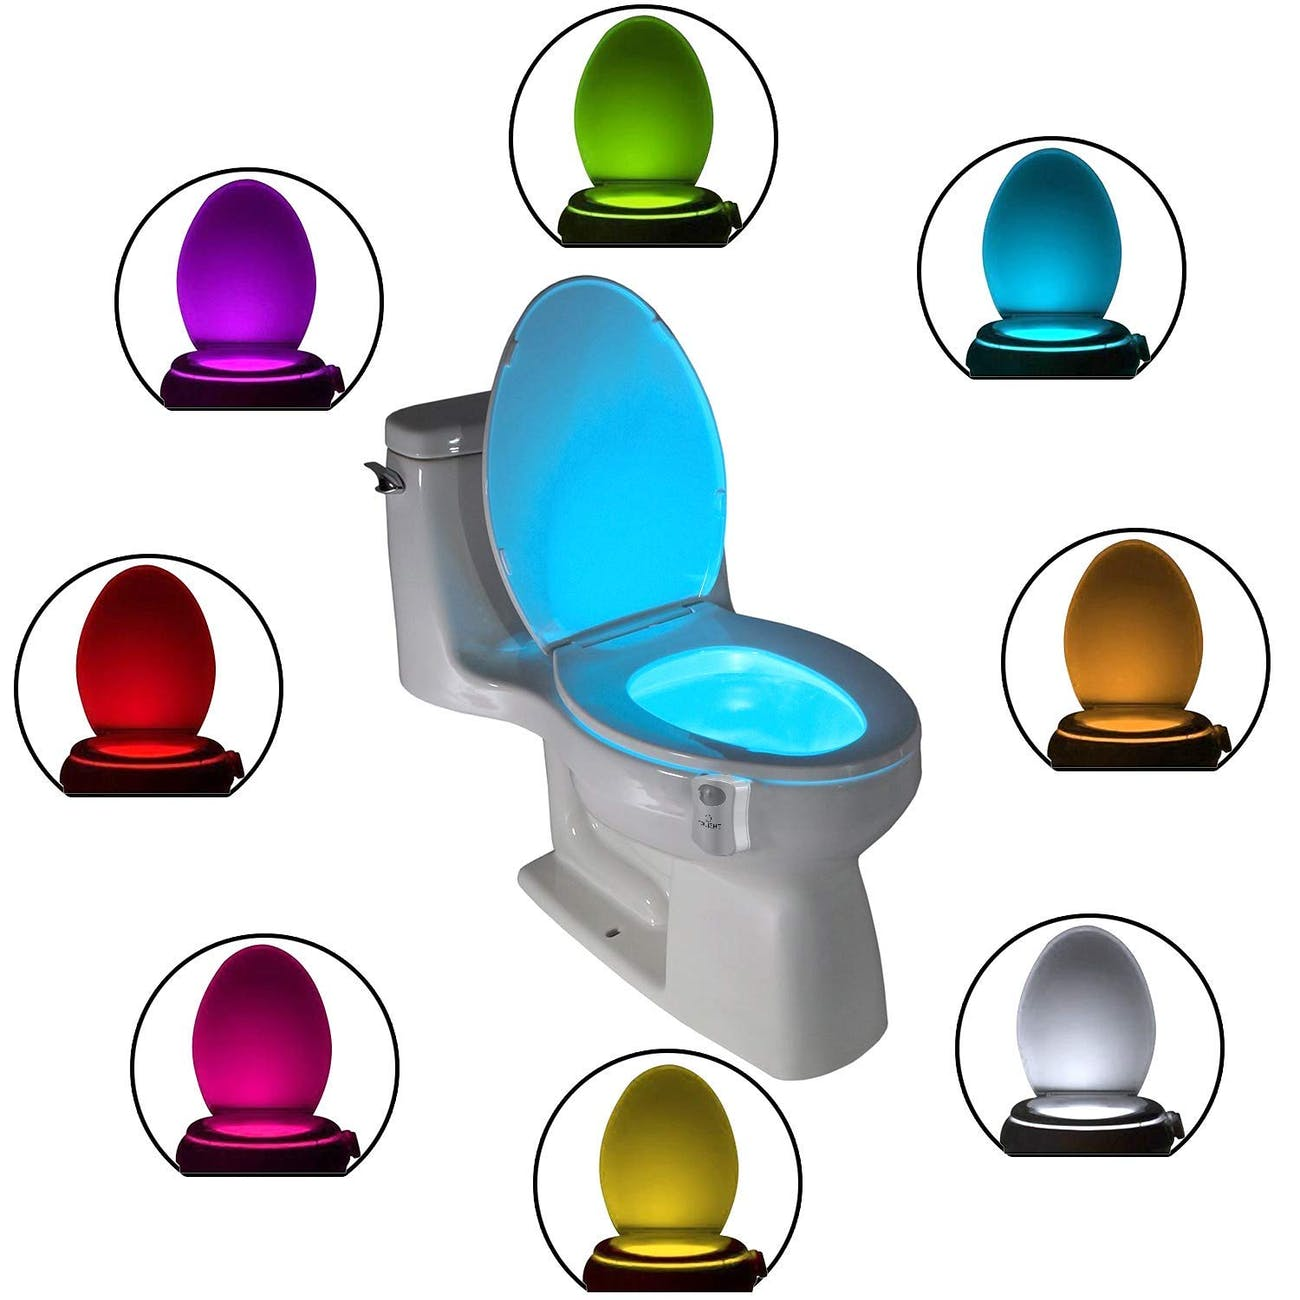 The Original Toilet Night Light Tech Gadget. Fun Bathroom Motion Sensor LED Lighting. Weird Novelty Funny Birthday Gag Gifts Ideas for Him Her Guys Men Dad Boys Toddlers Mom Papa